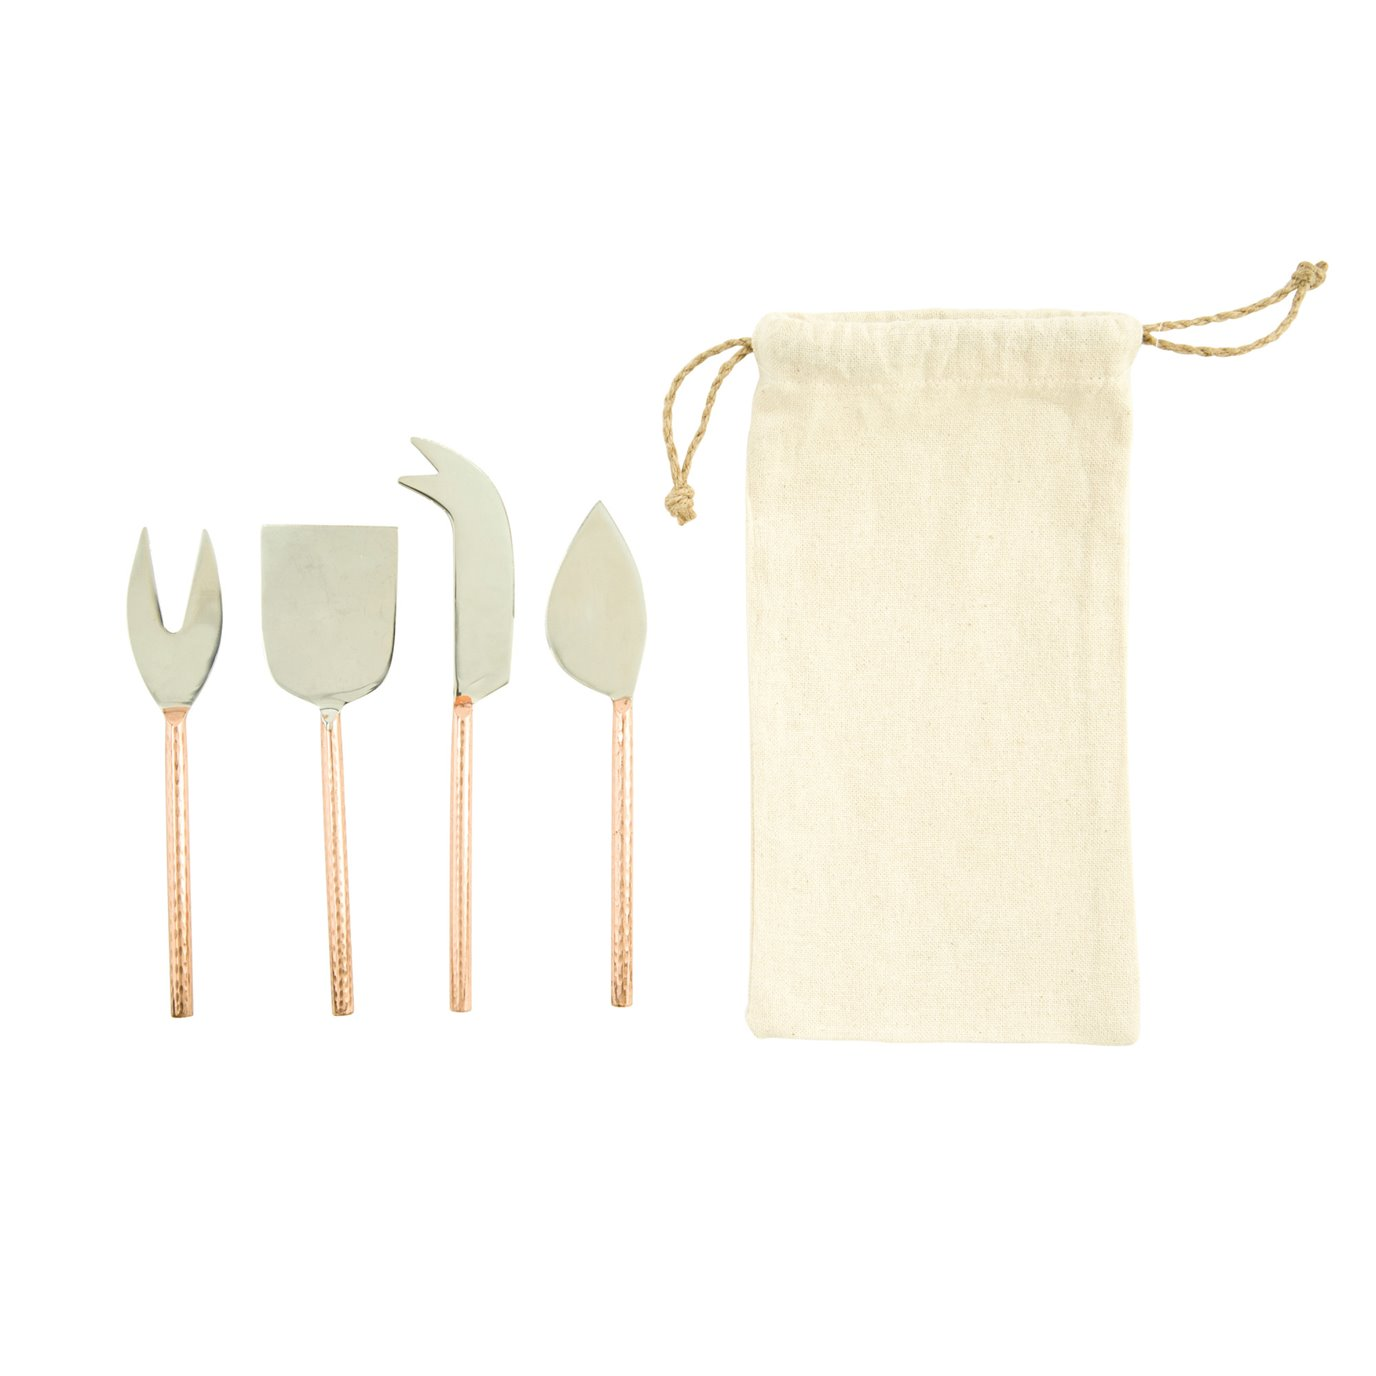 Stainless Steel Cheese Knives with Copper Finished Handle (Set of 4 Pieces in Drawstring Bag)